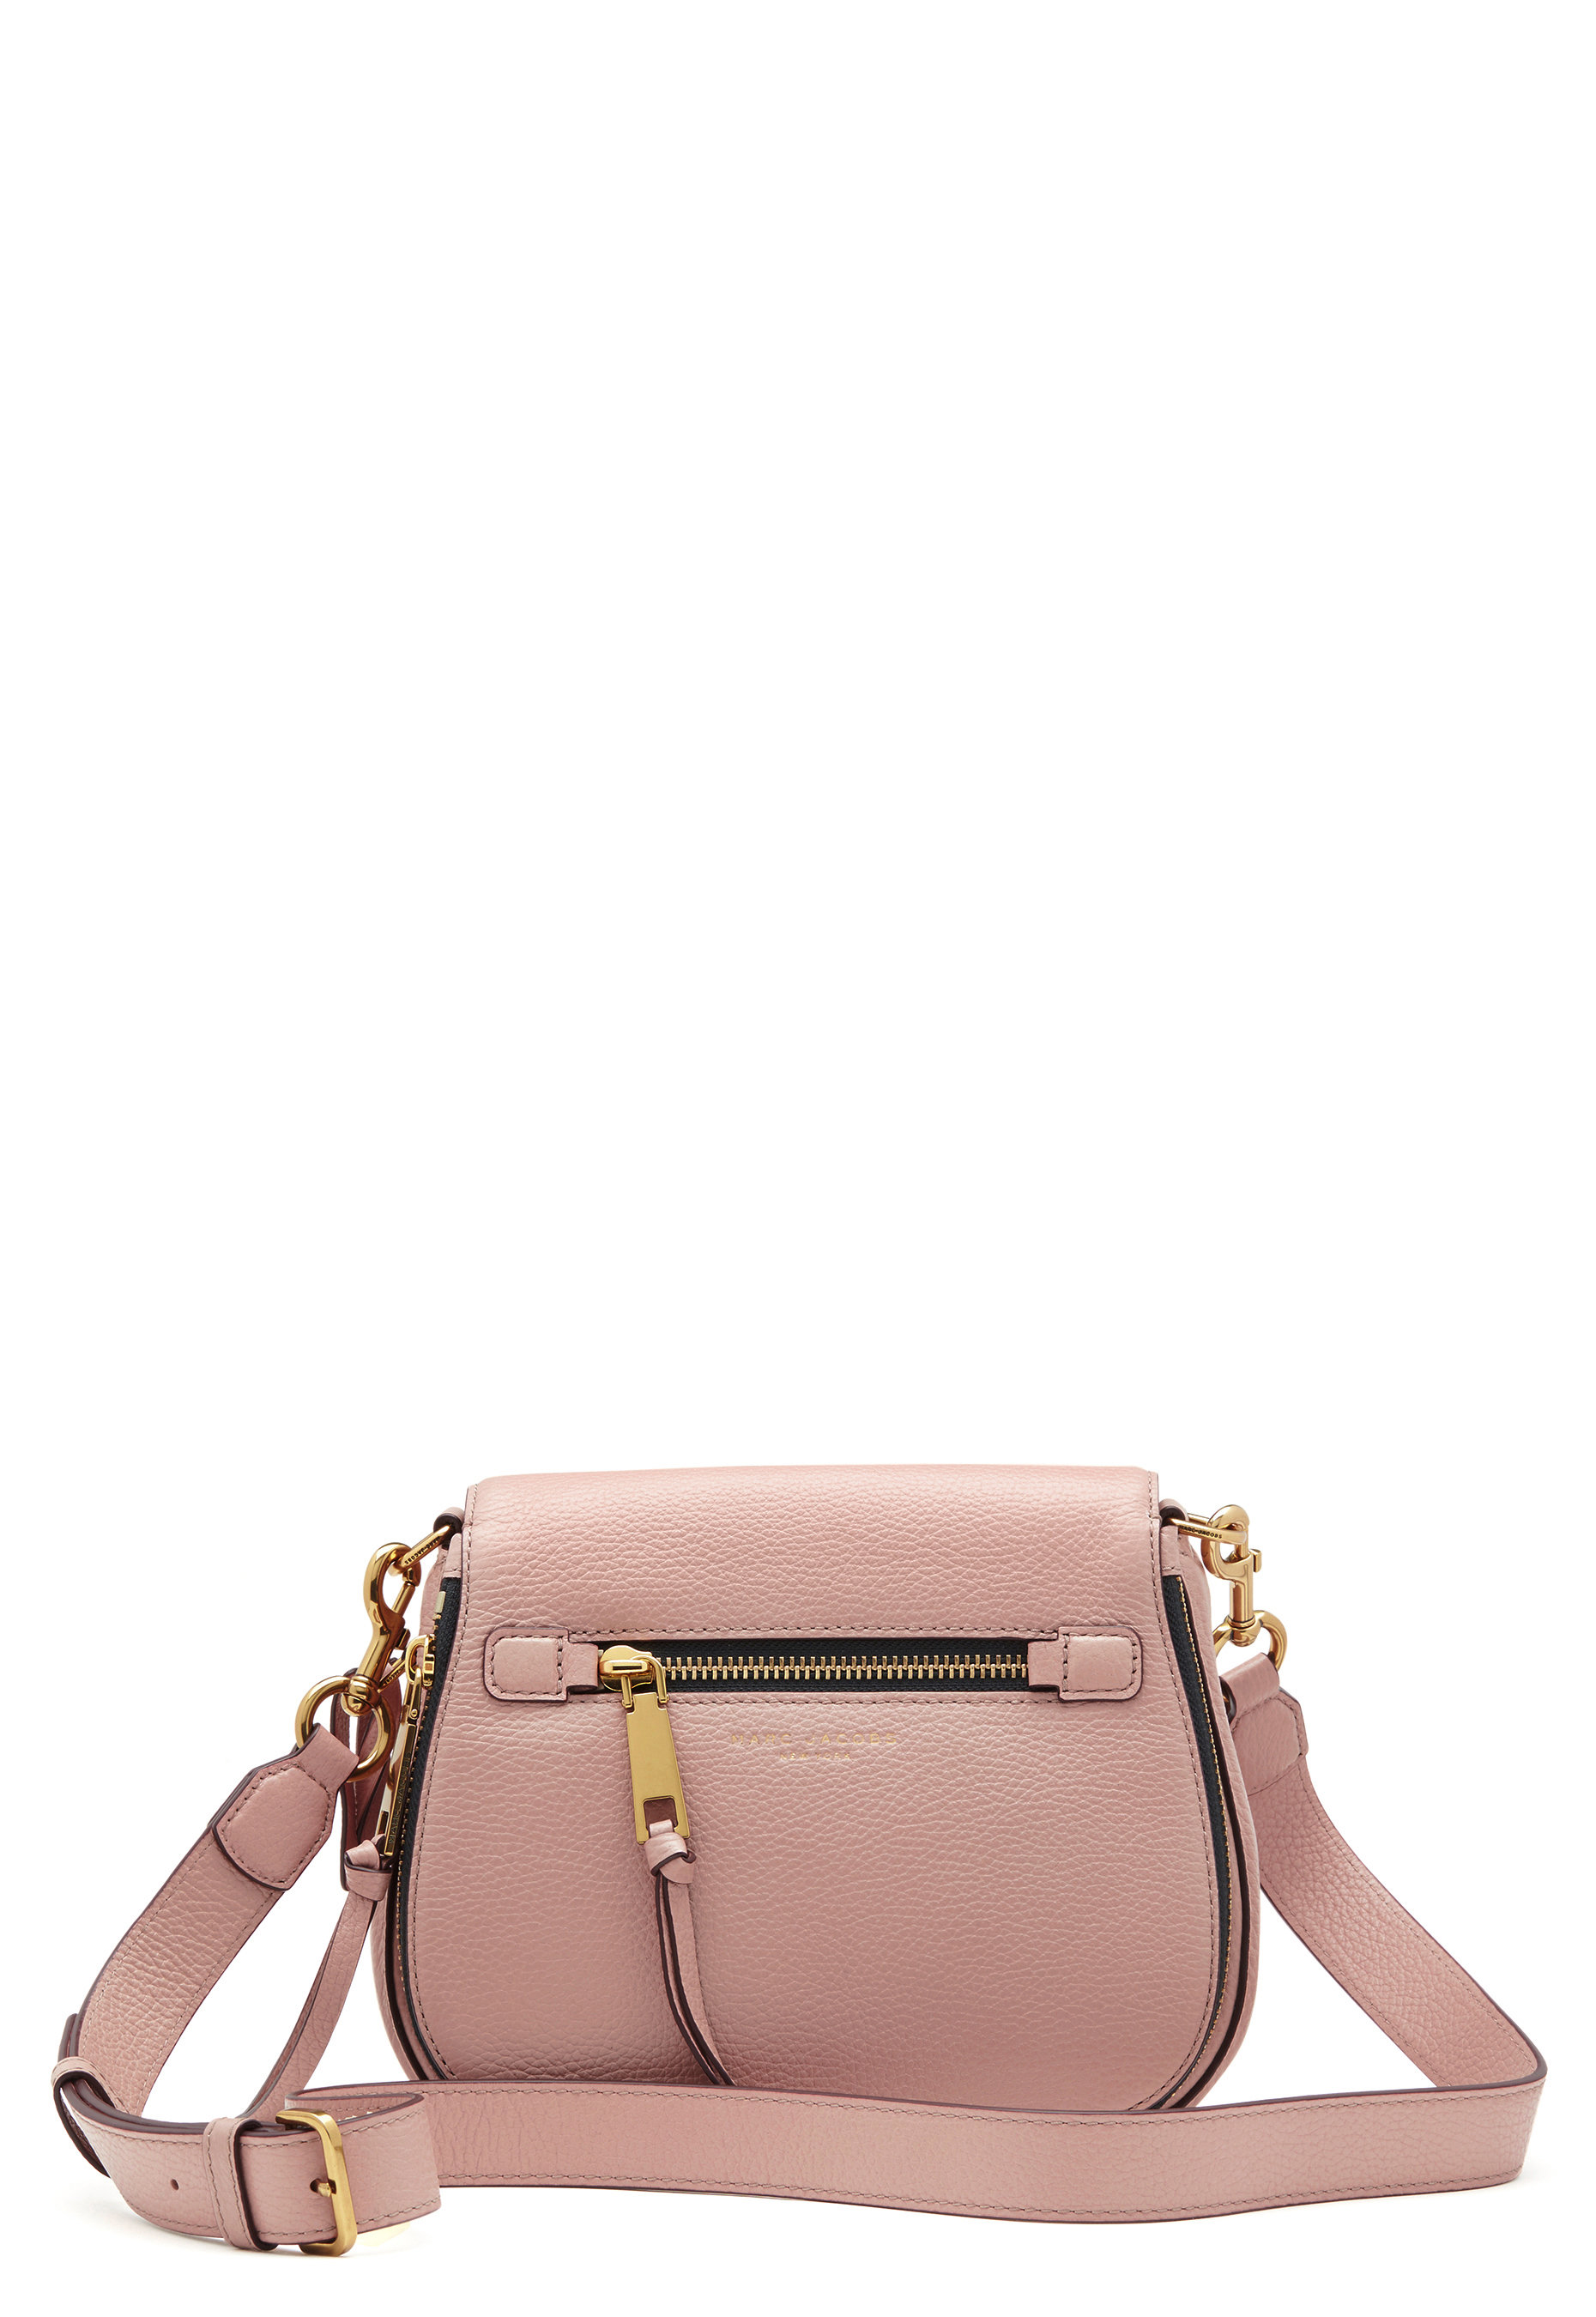 b37ed61b917d0 Marc Jacobs Small Nomad Crossbody Bag Rose - Bubbleroom